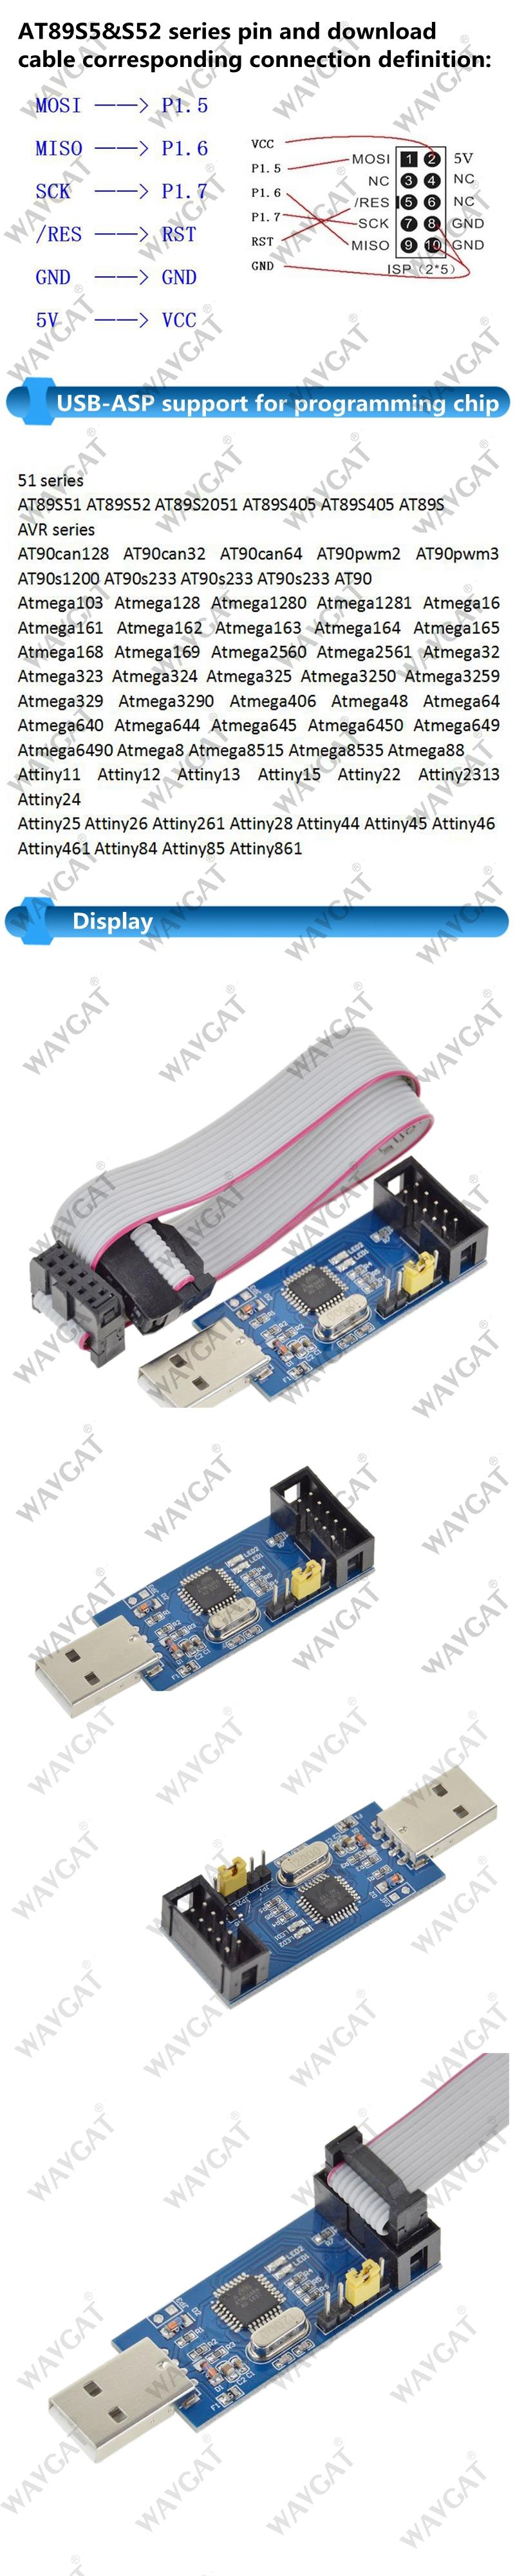 Detail Feedback Questions About Wavgat Usbasp Usbisp Avr Programmer Usb Isp For Atmel With Case Reviews Aeproductgetsubject